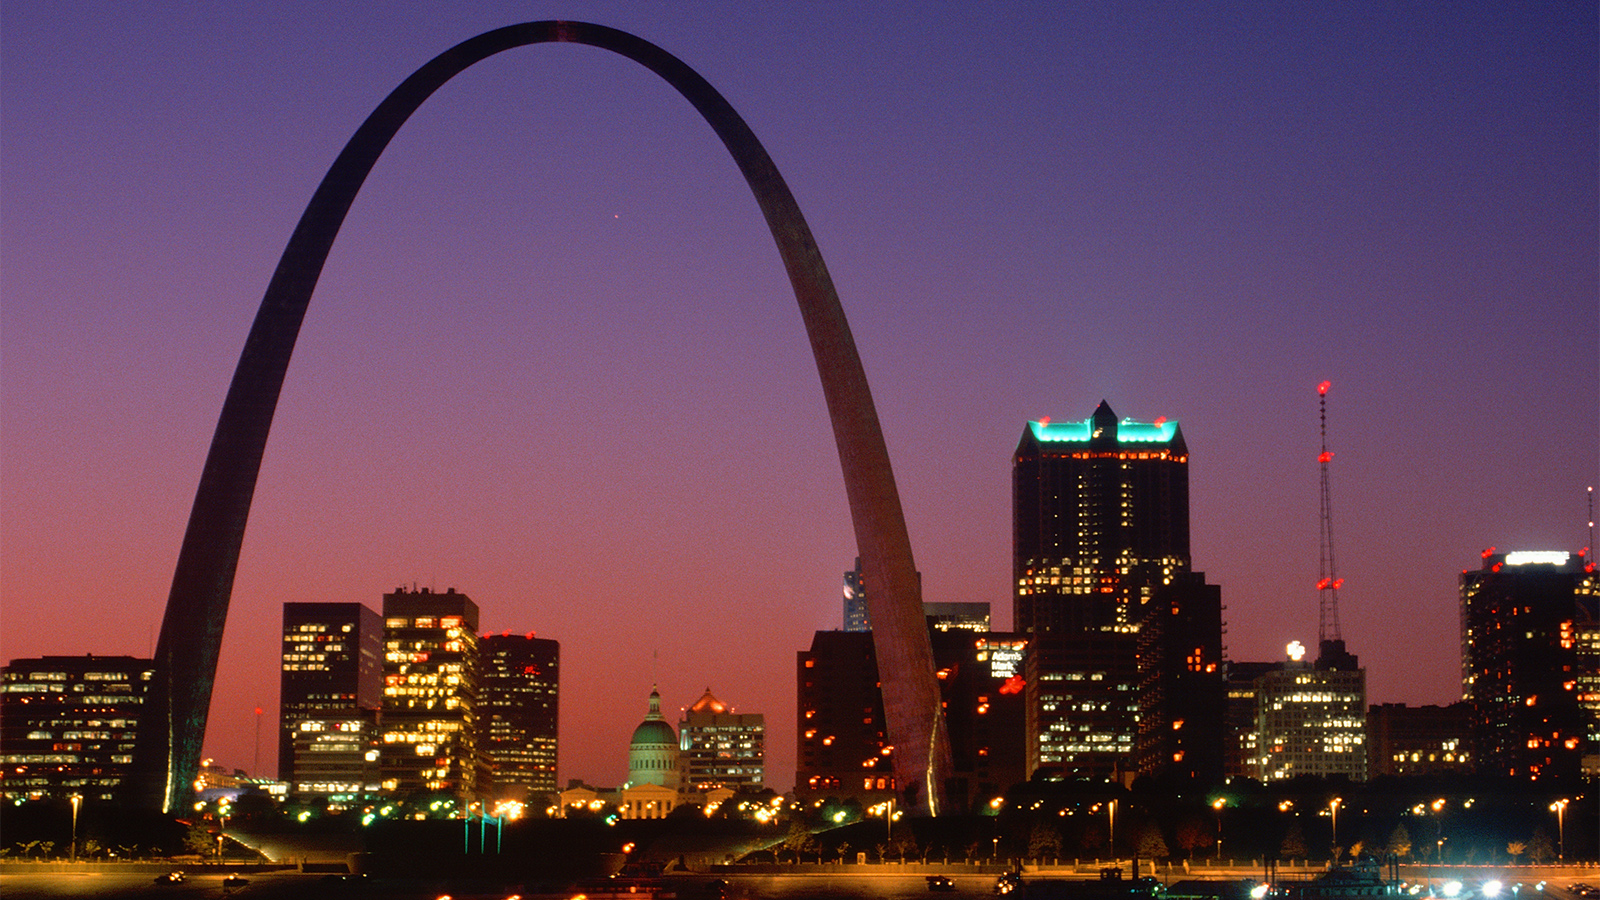 How Eero Saarinen Dreamed Up the St. Louis Arch